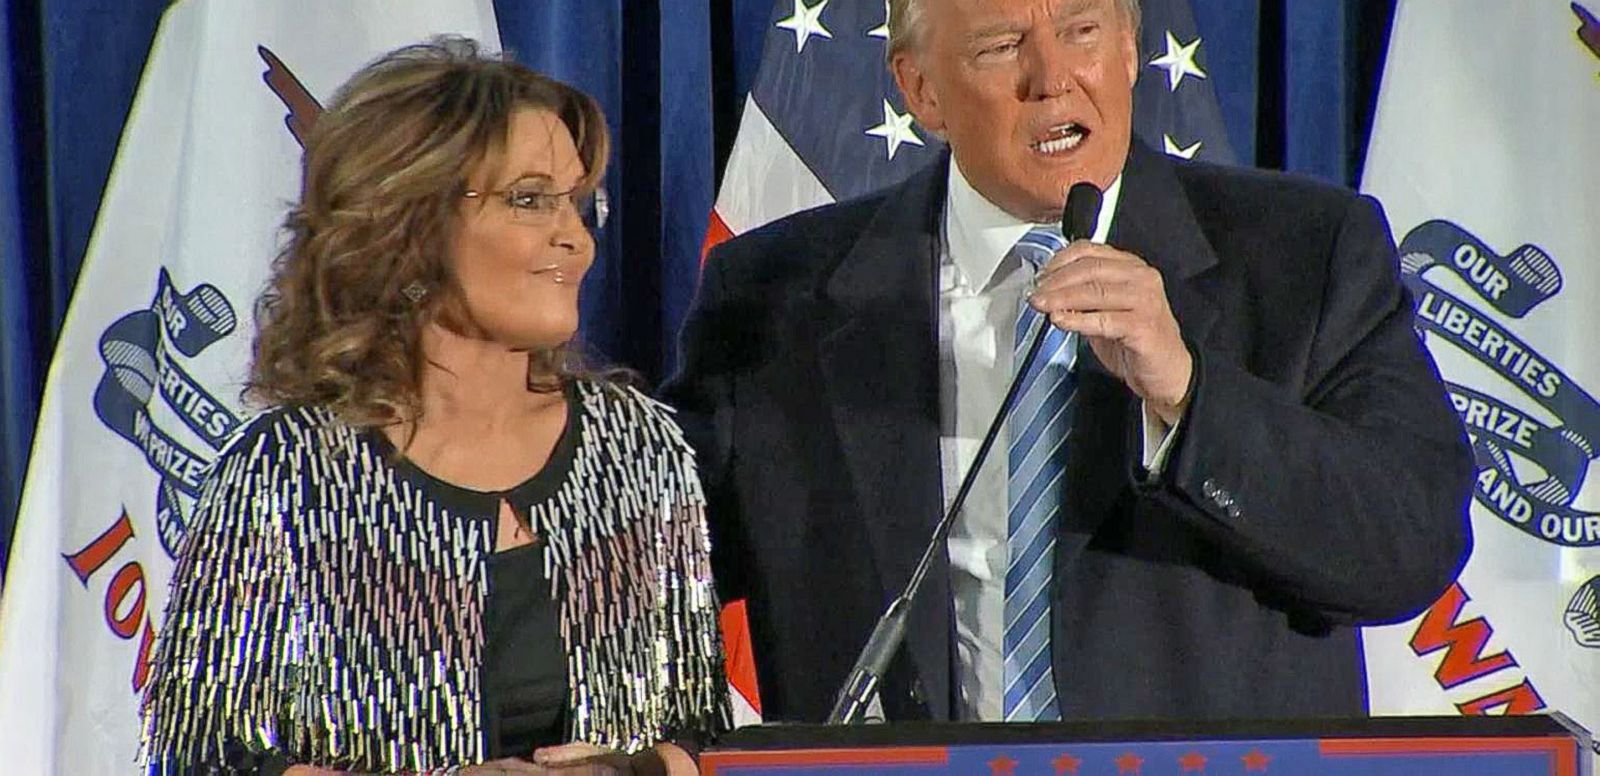 VIDEO: Sarah Palin Endorses Donald Trump for President